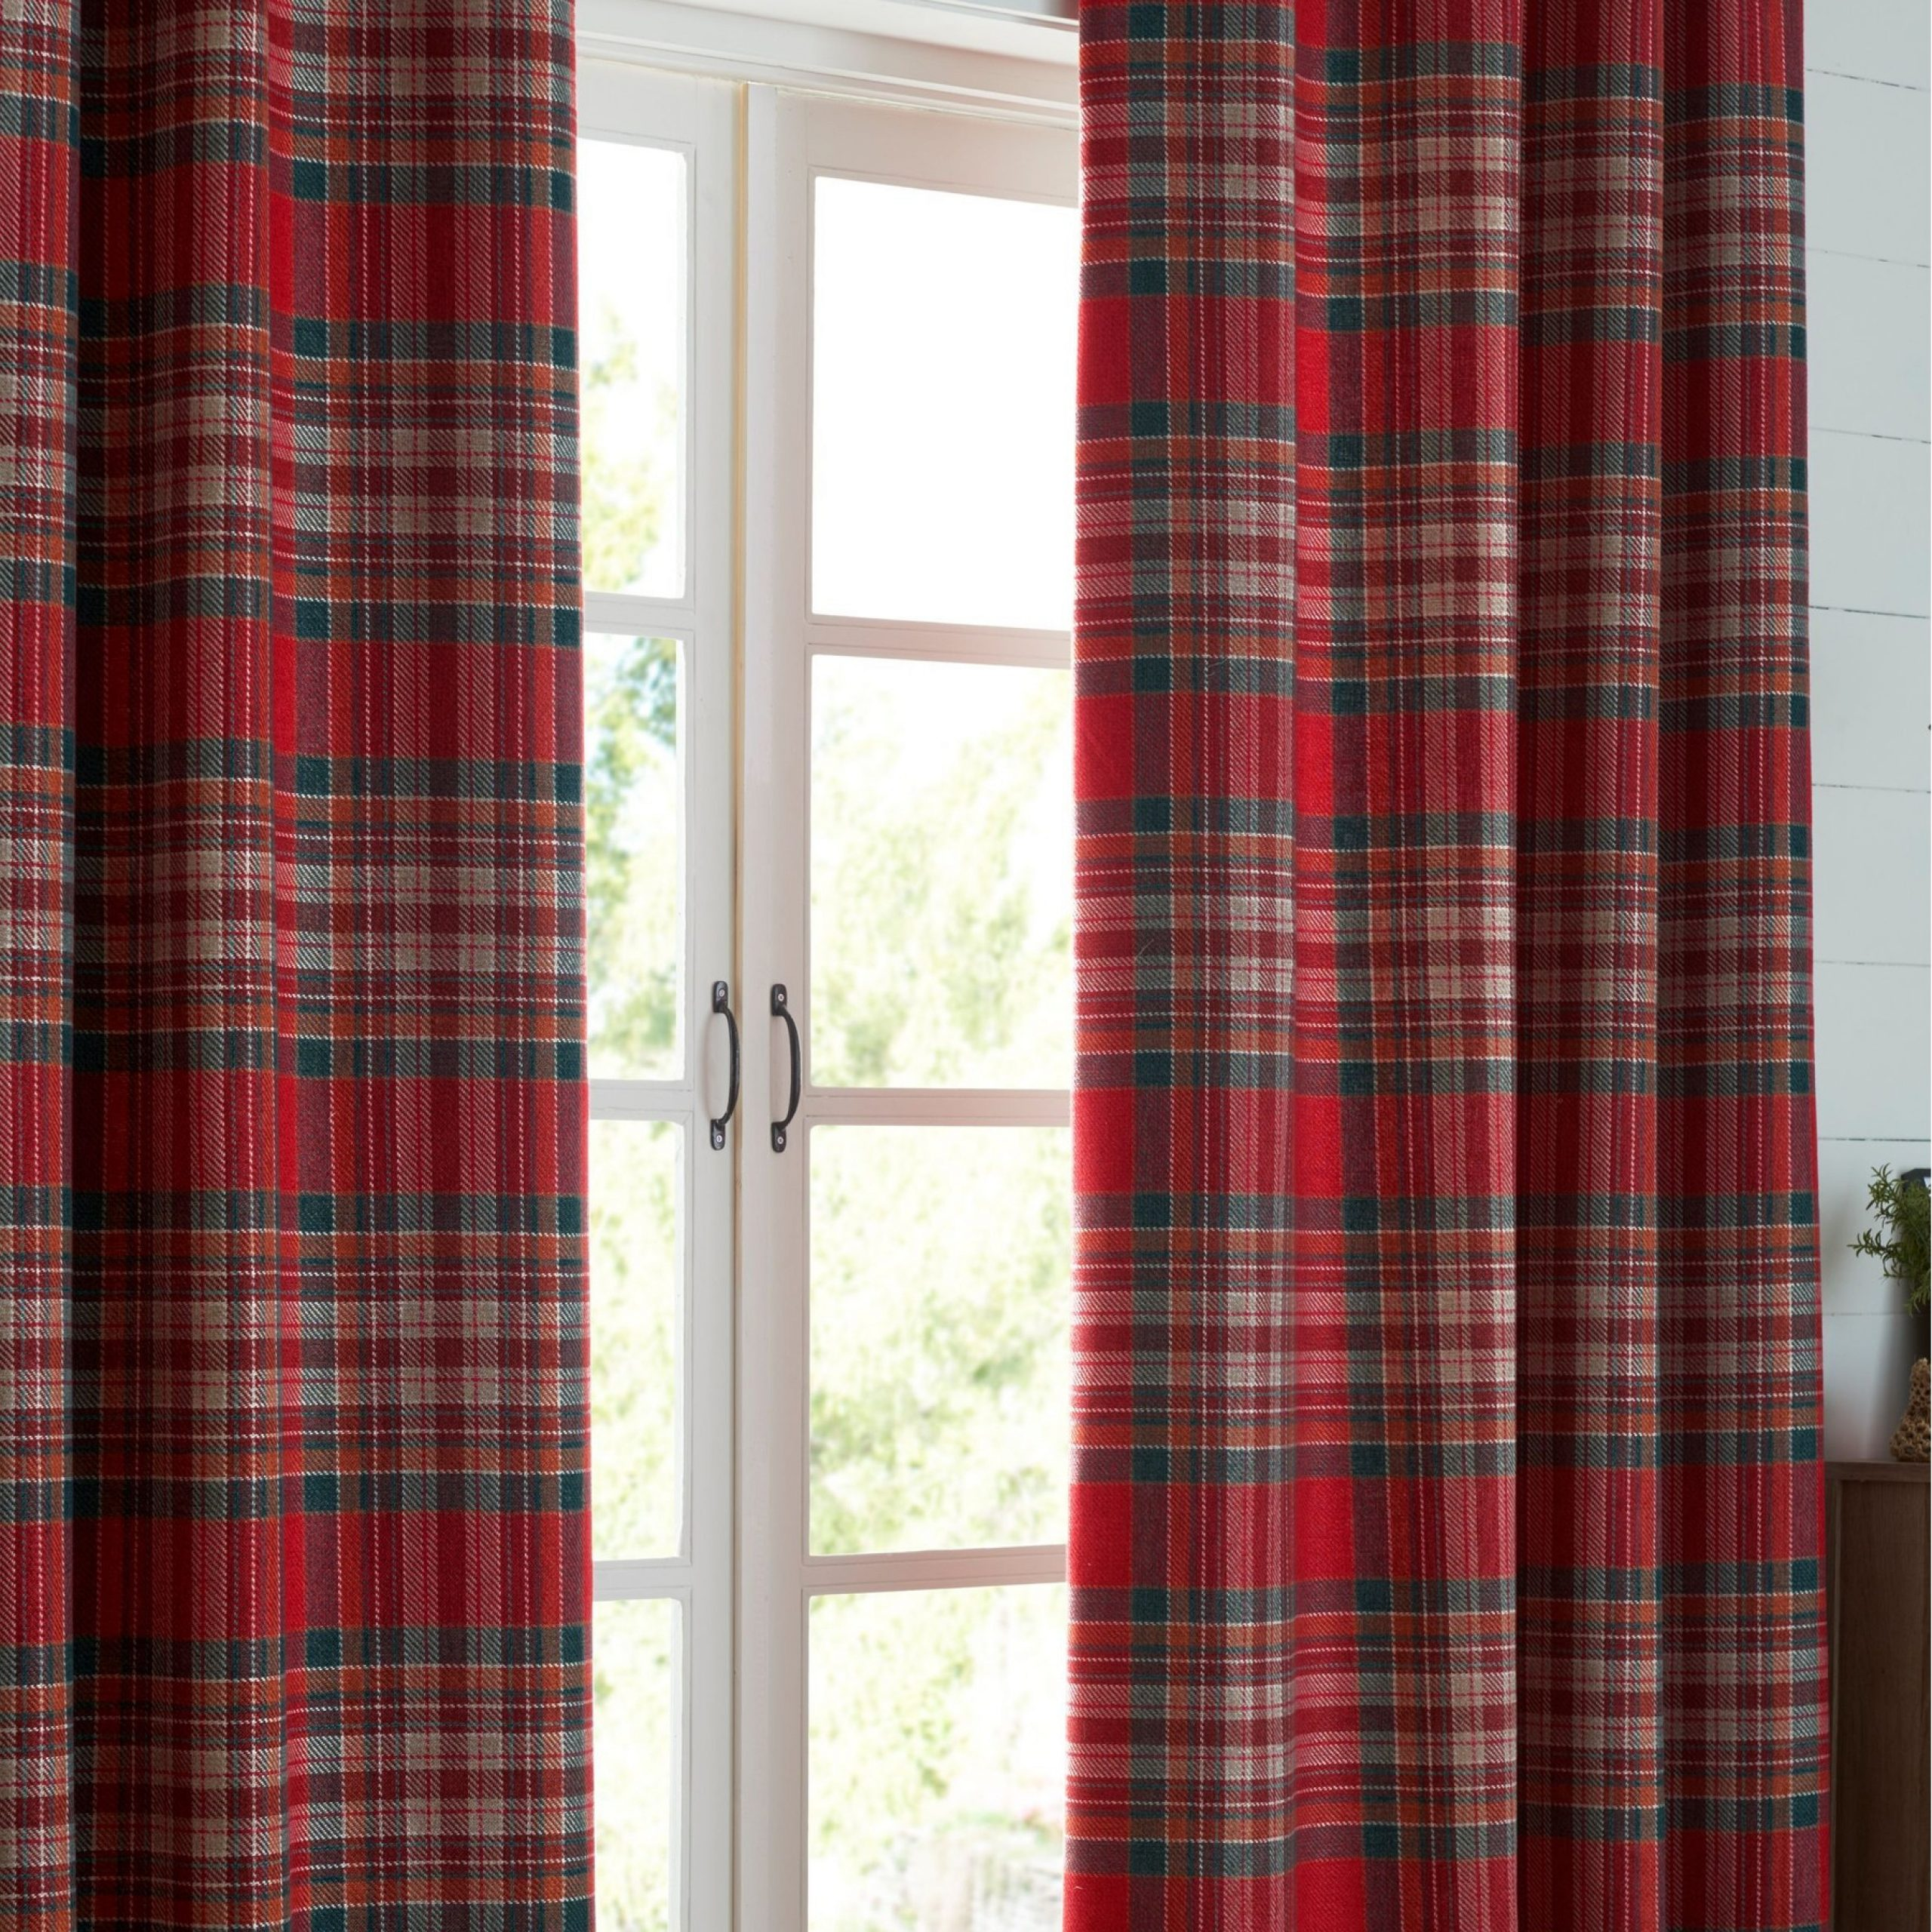 Next Crafted Thornly Woven Check Eyelet Super Thermal Pertaining To Cumberland Tier Pair Rod Pocket Cotton Buffalo Check Kitchen Curtains (View 17 of 20)